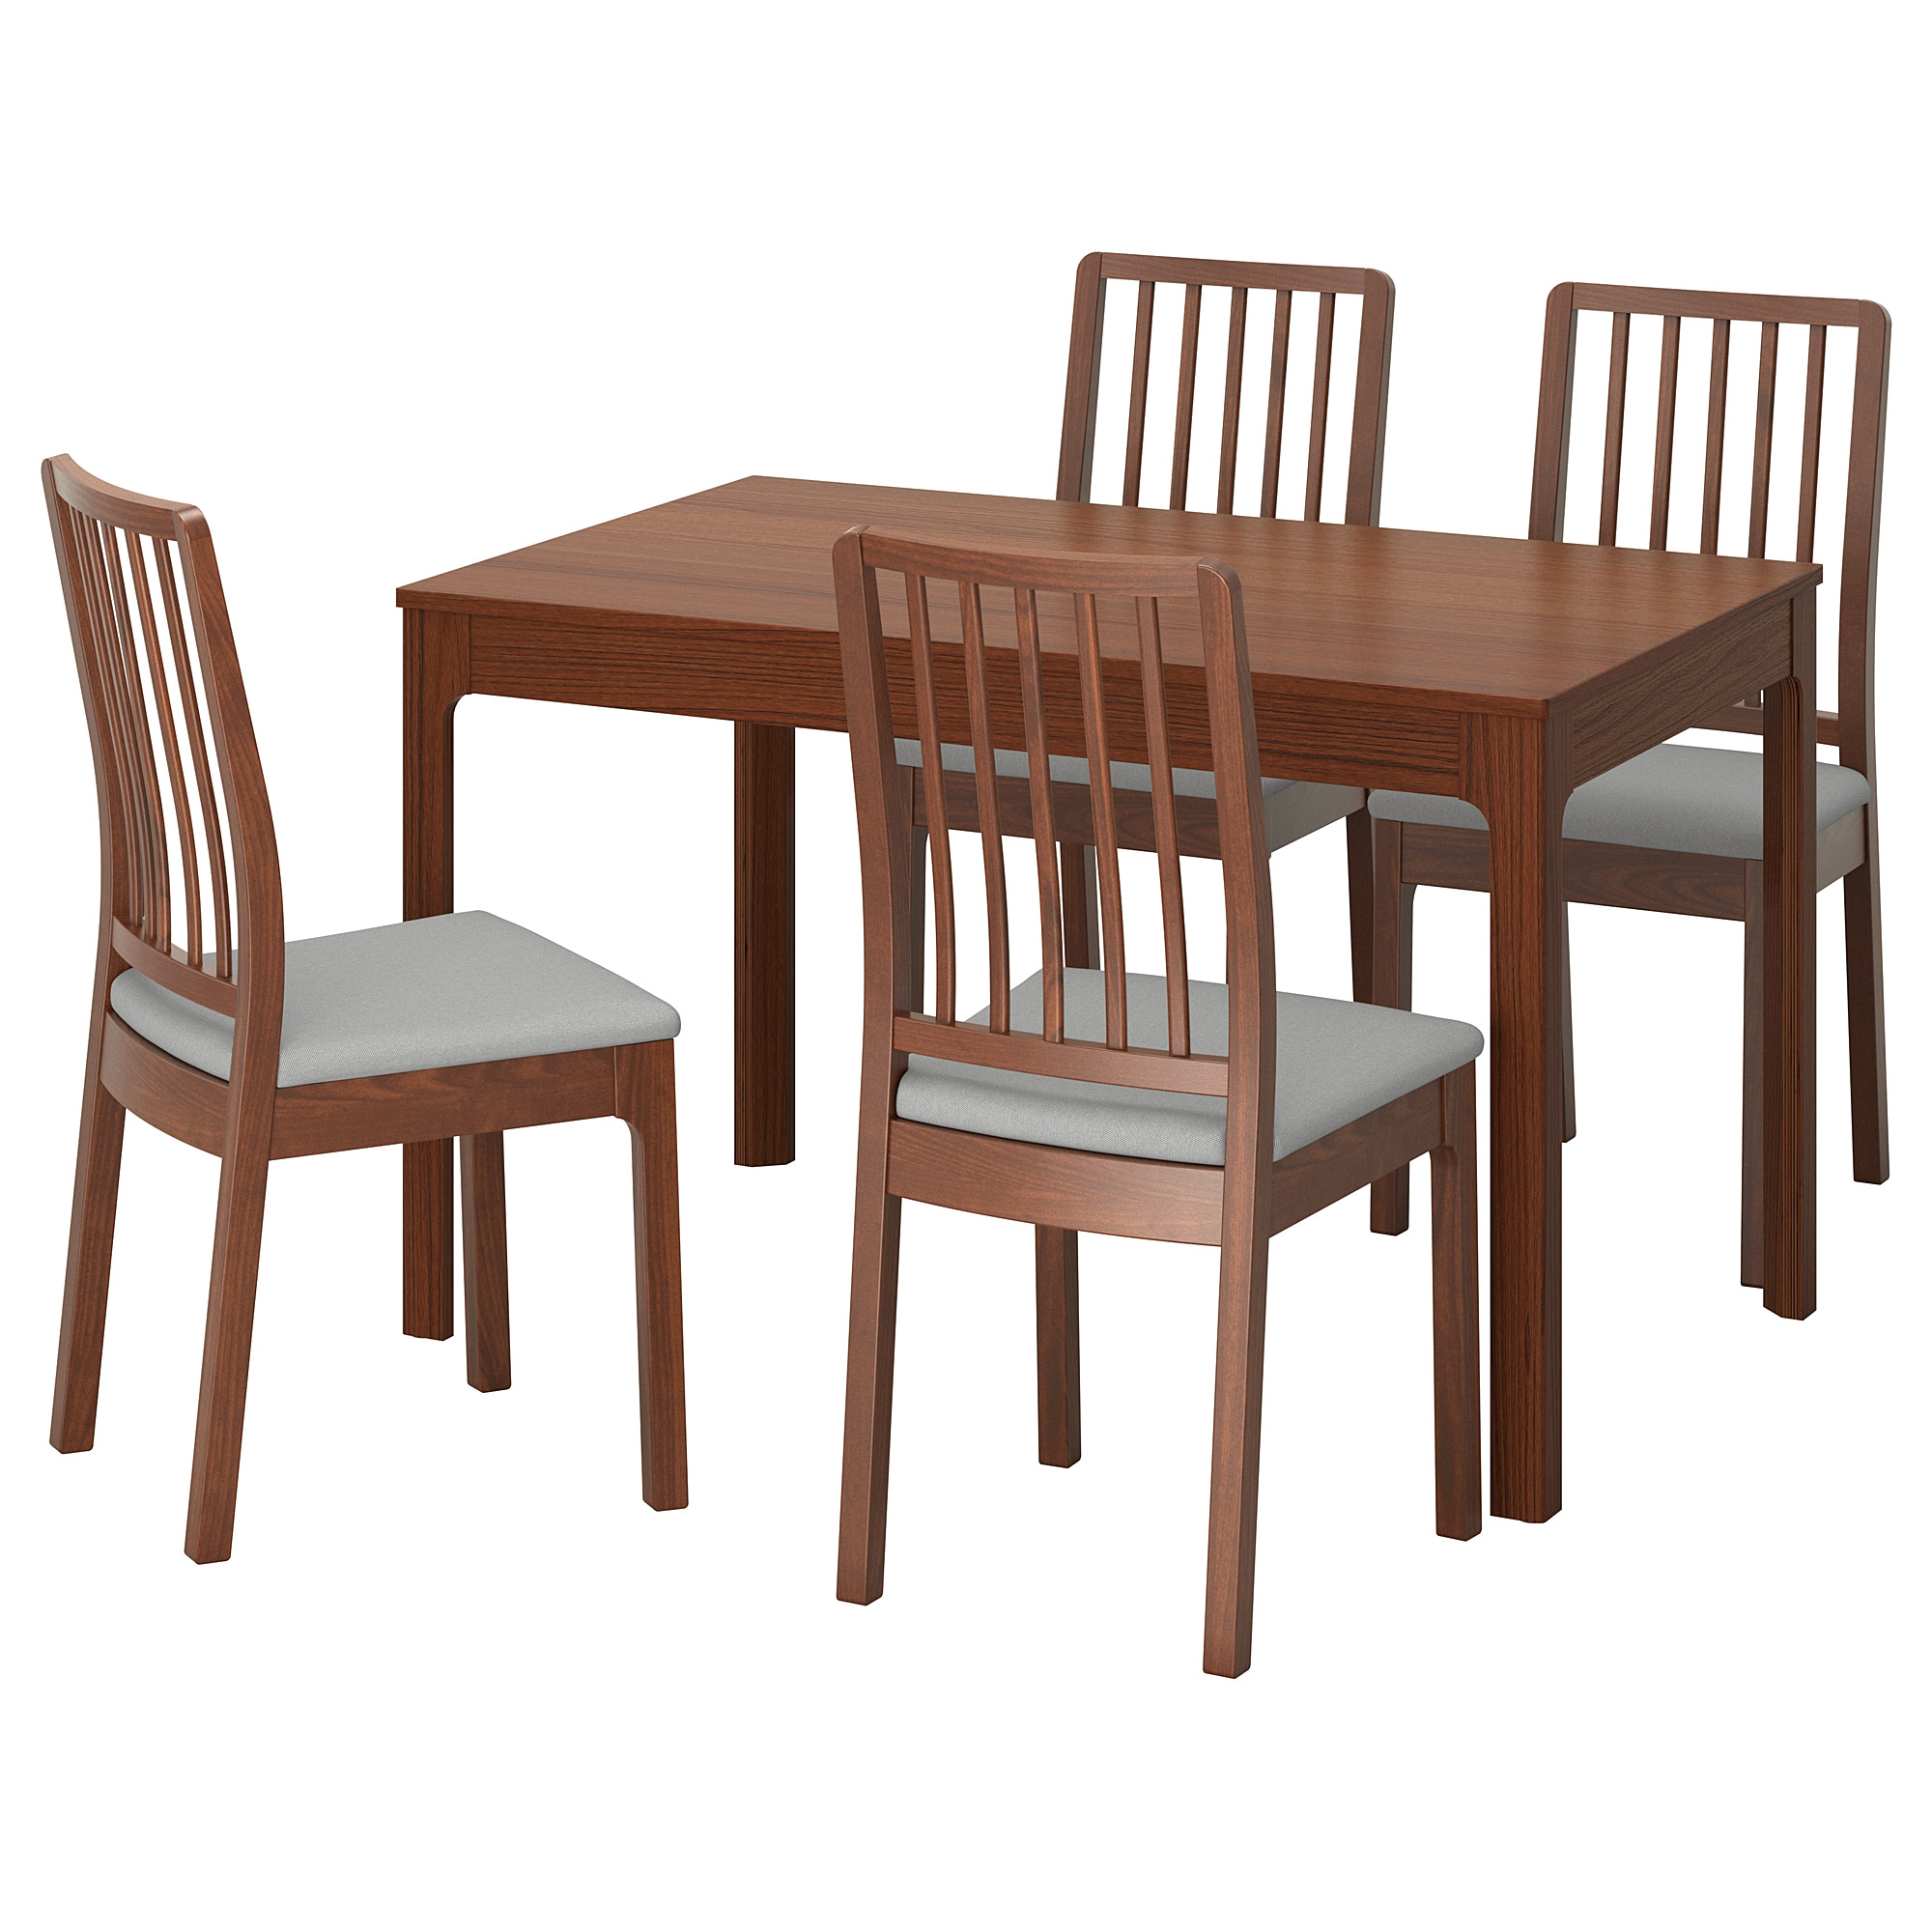 Ekedalen Ekedalen Table And 4 Chairs Brown Orrsta Light Gray